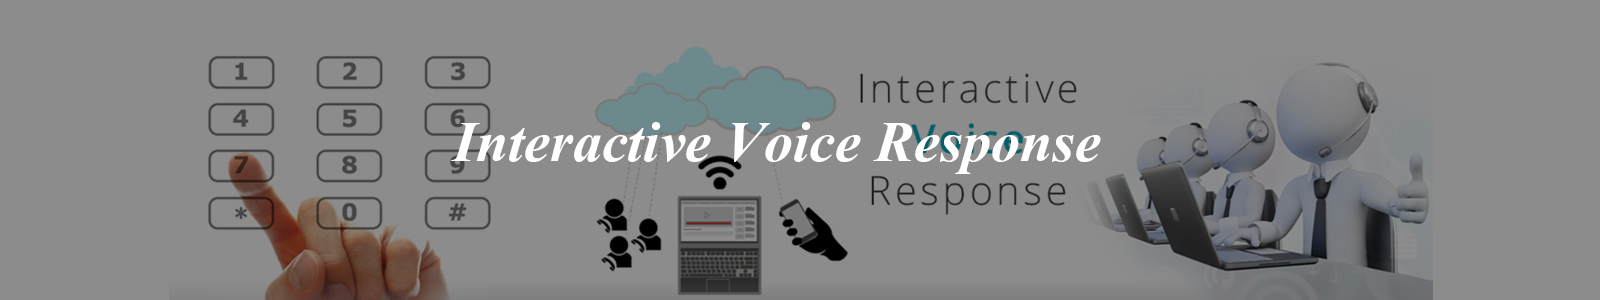 Interactive Voice Response-banner